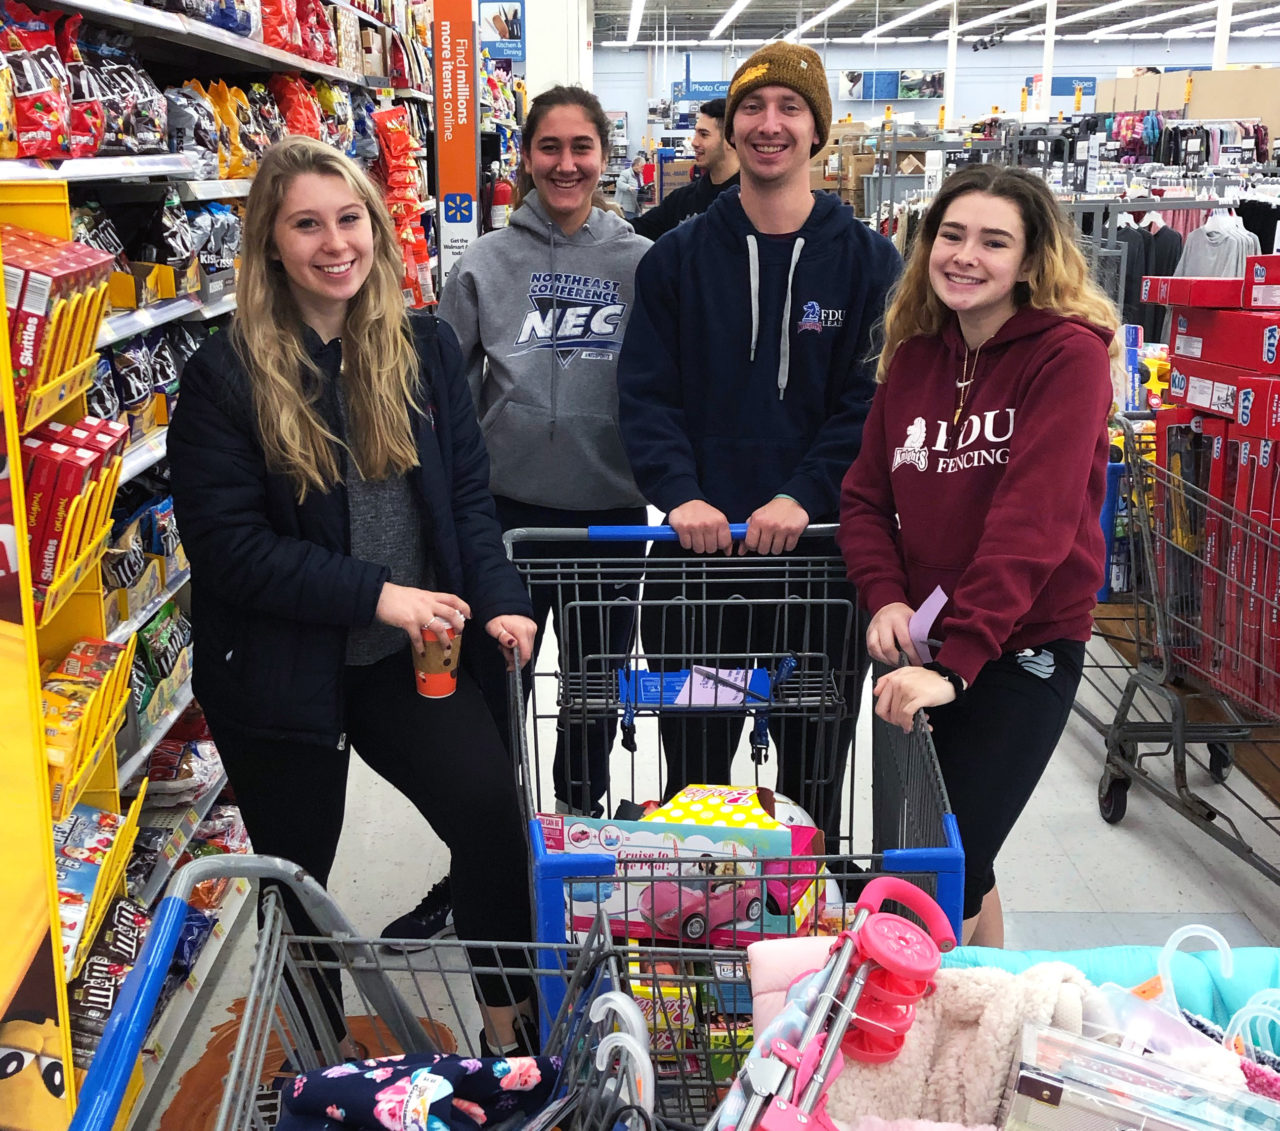 group of students in a grocery store